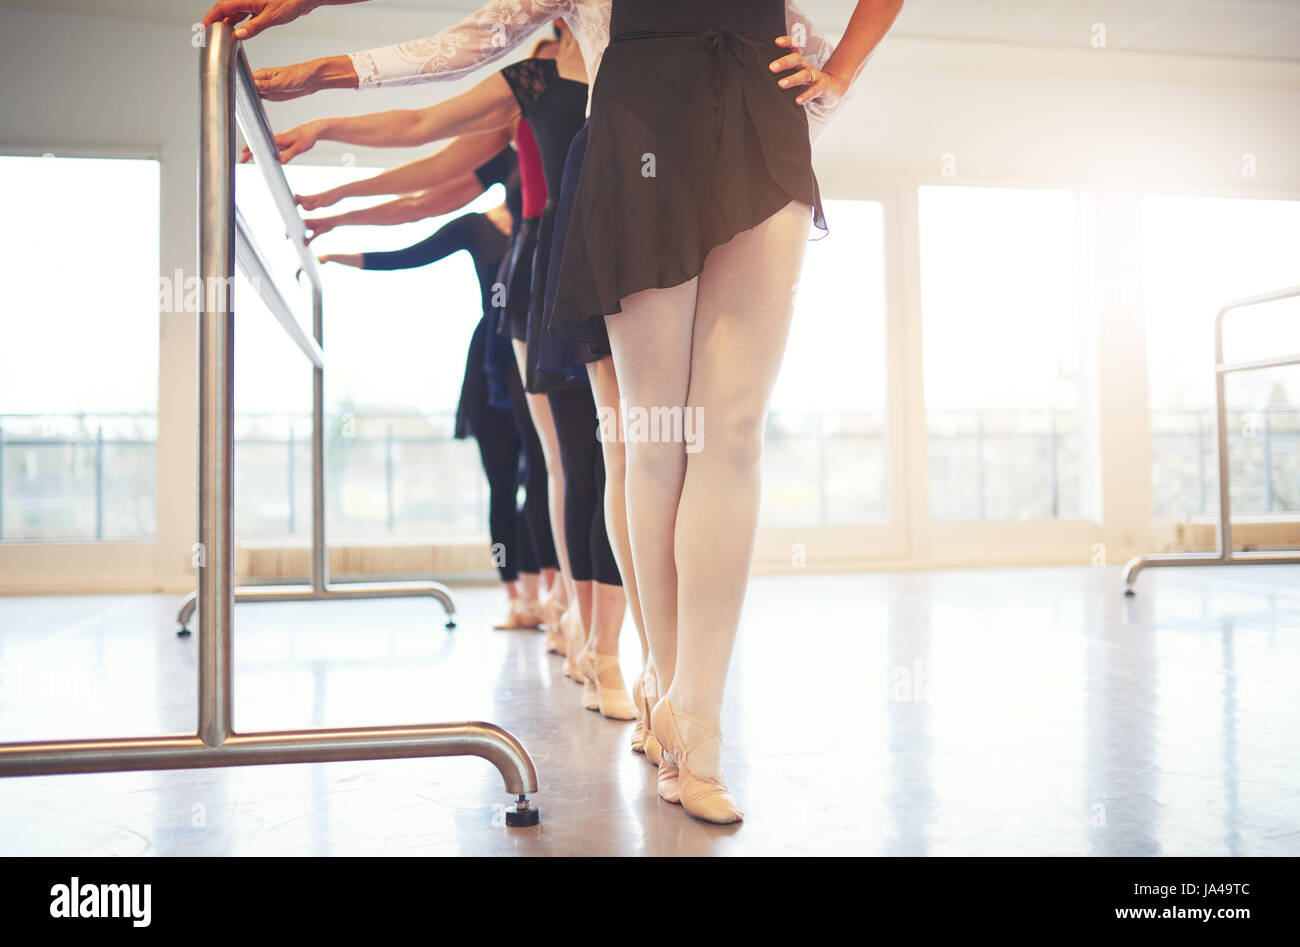 Legs of unrecognizable female ballet performers standing and doing gymnastics in the class. - Stock Image